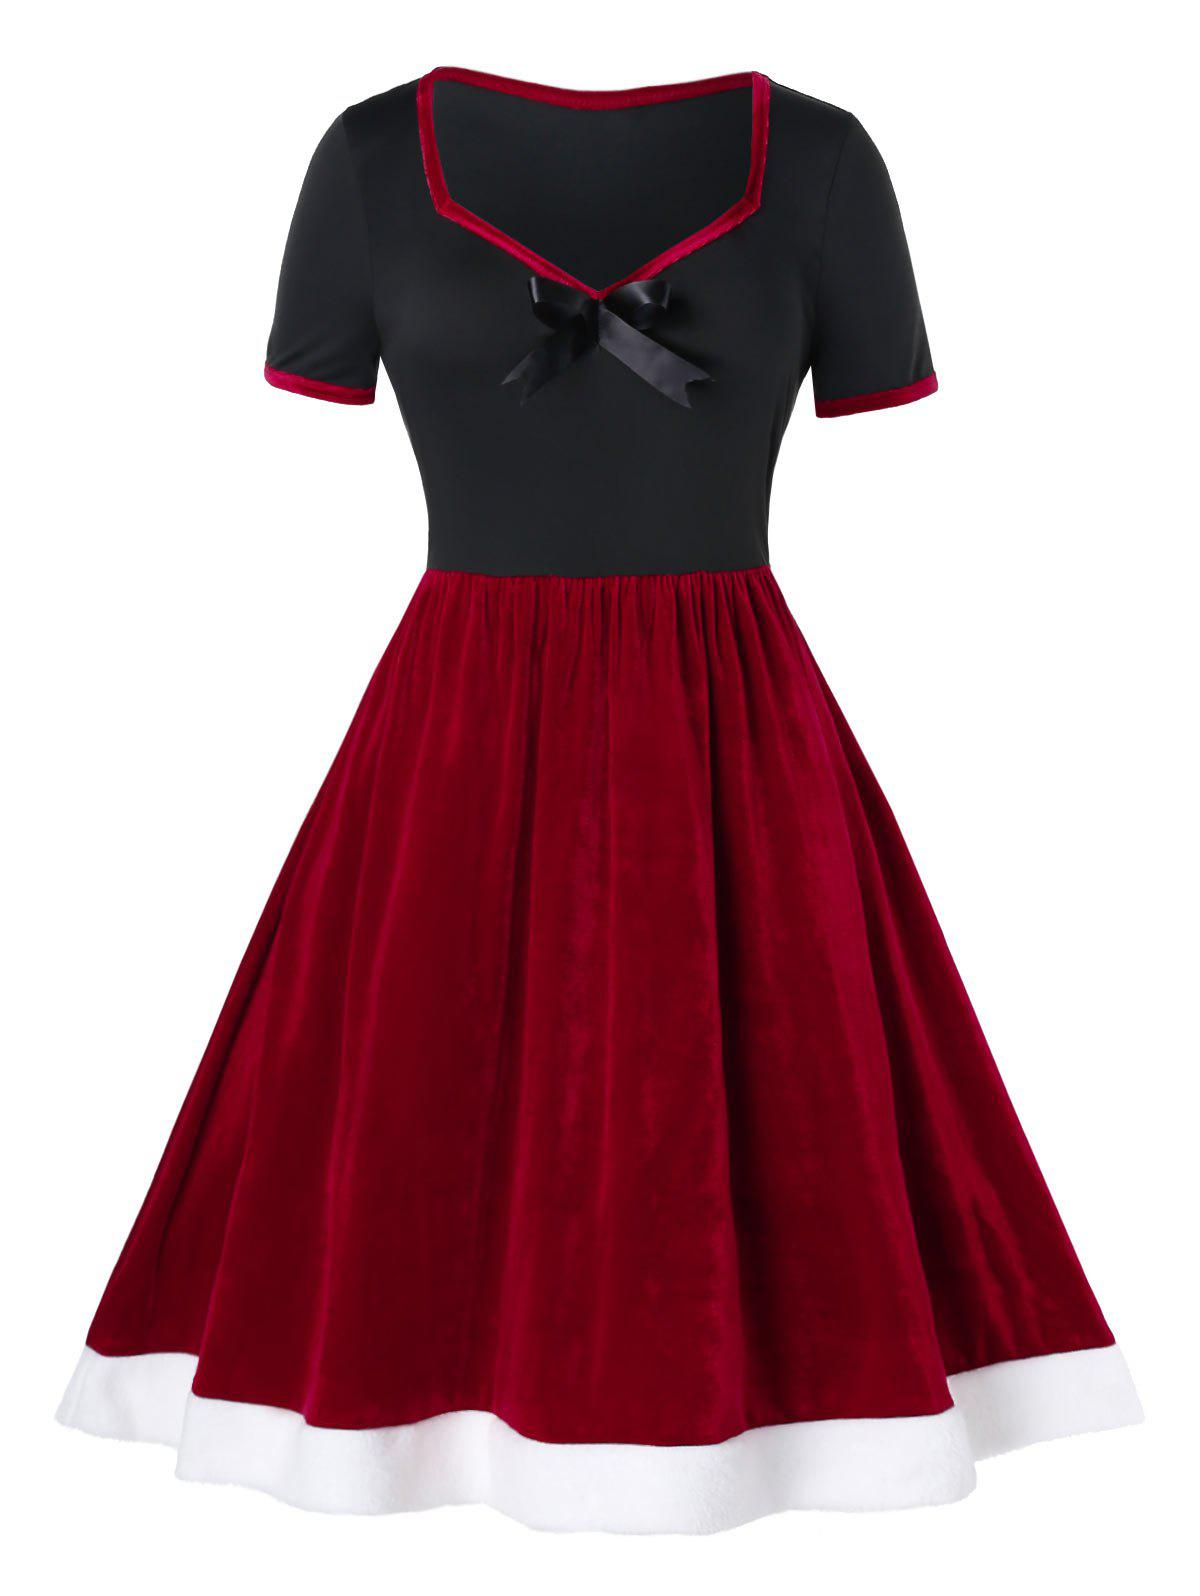 Plus Size Colorblock Vintage Velvet Dress Up Pin Rouge Cerise 5X